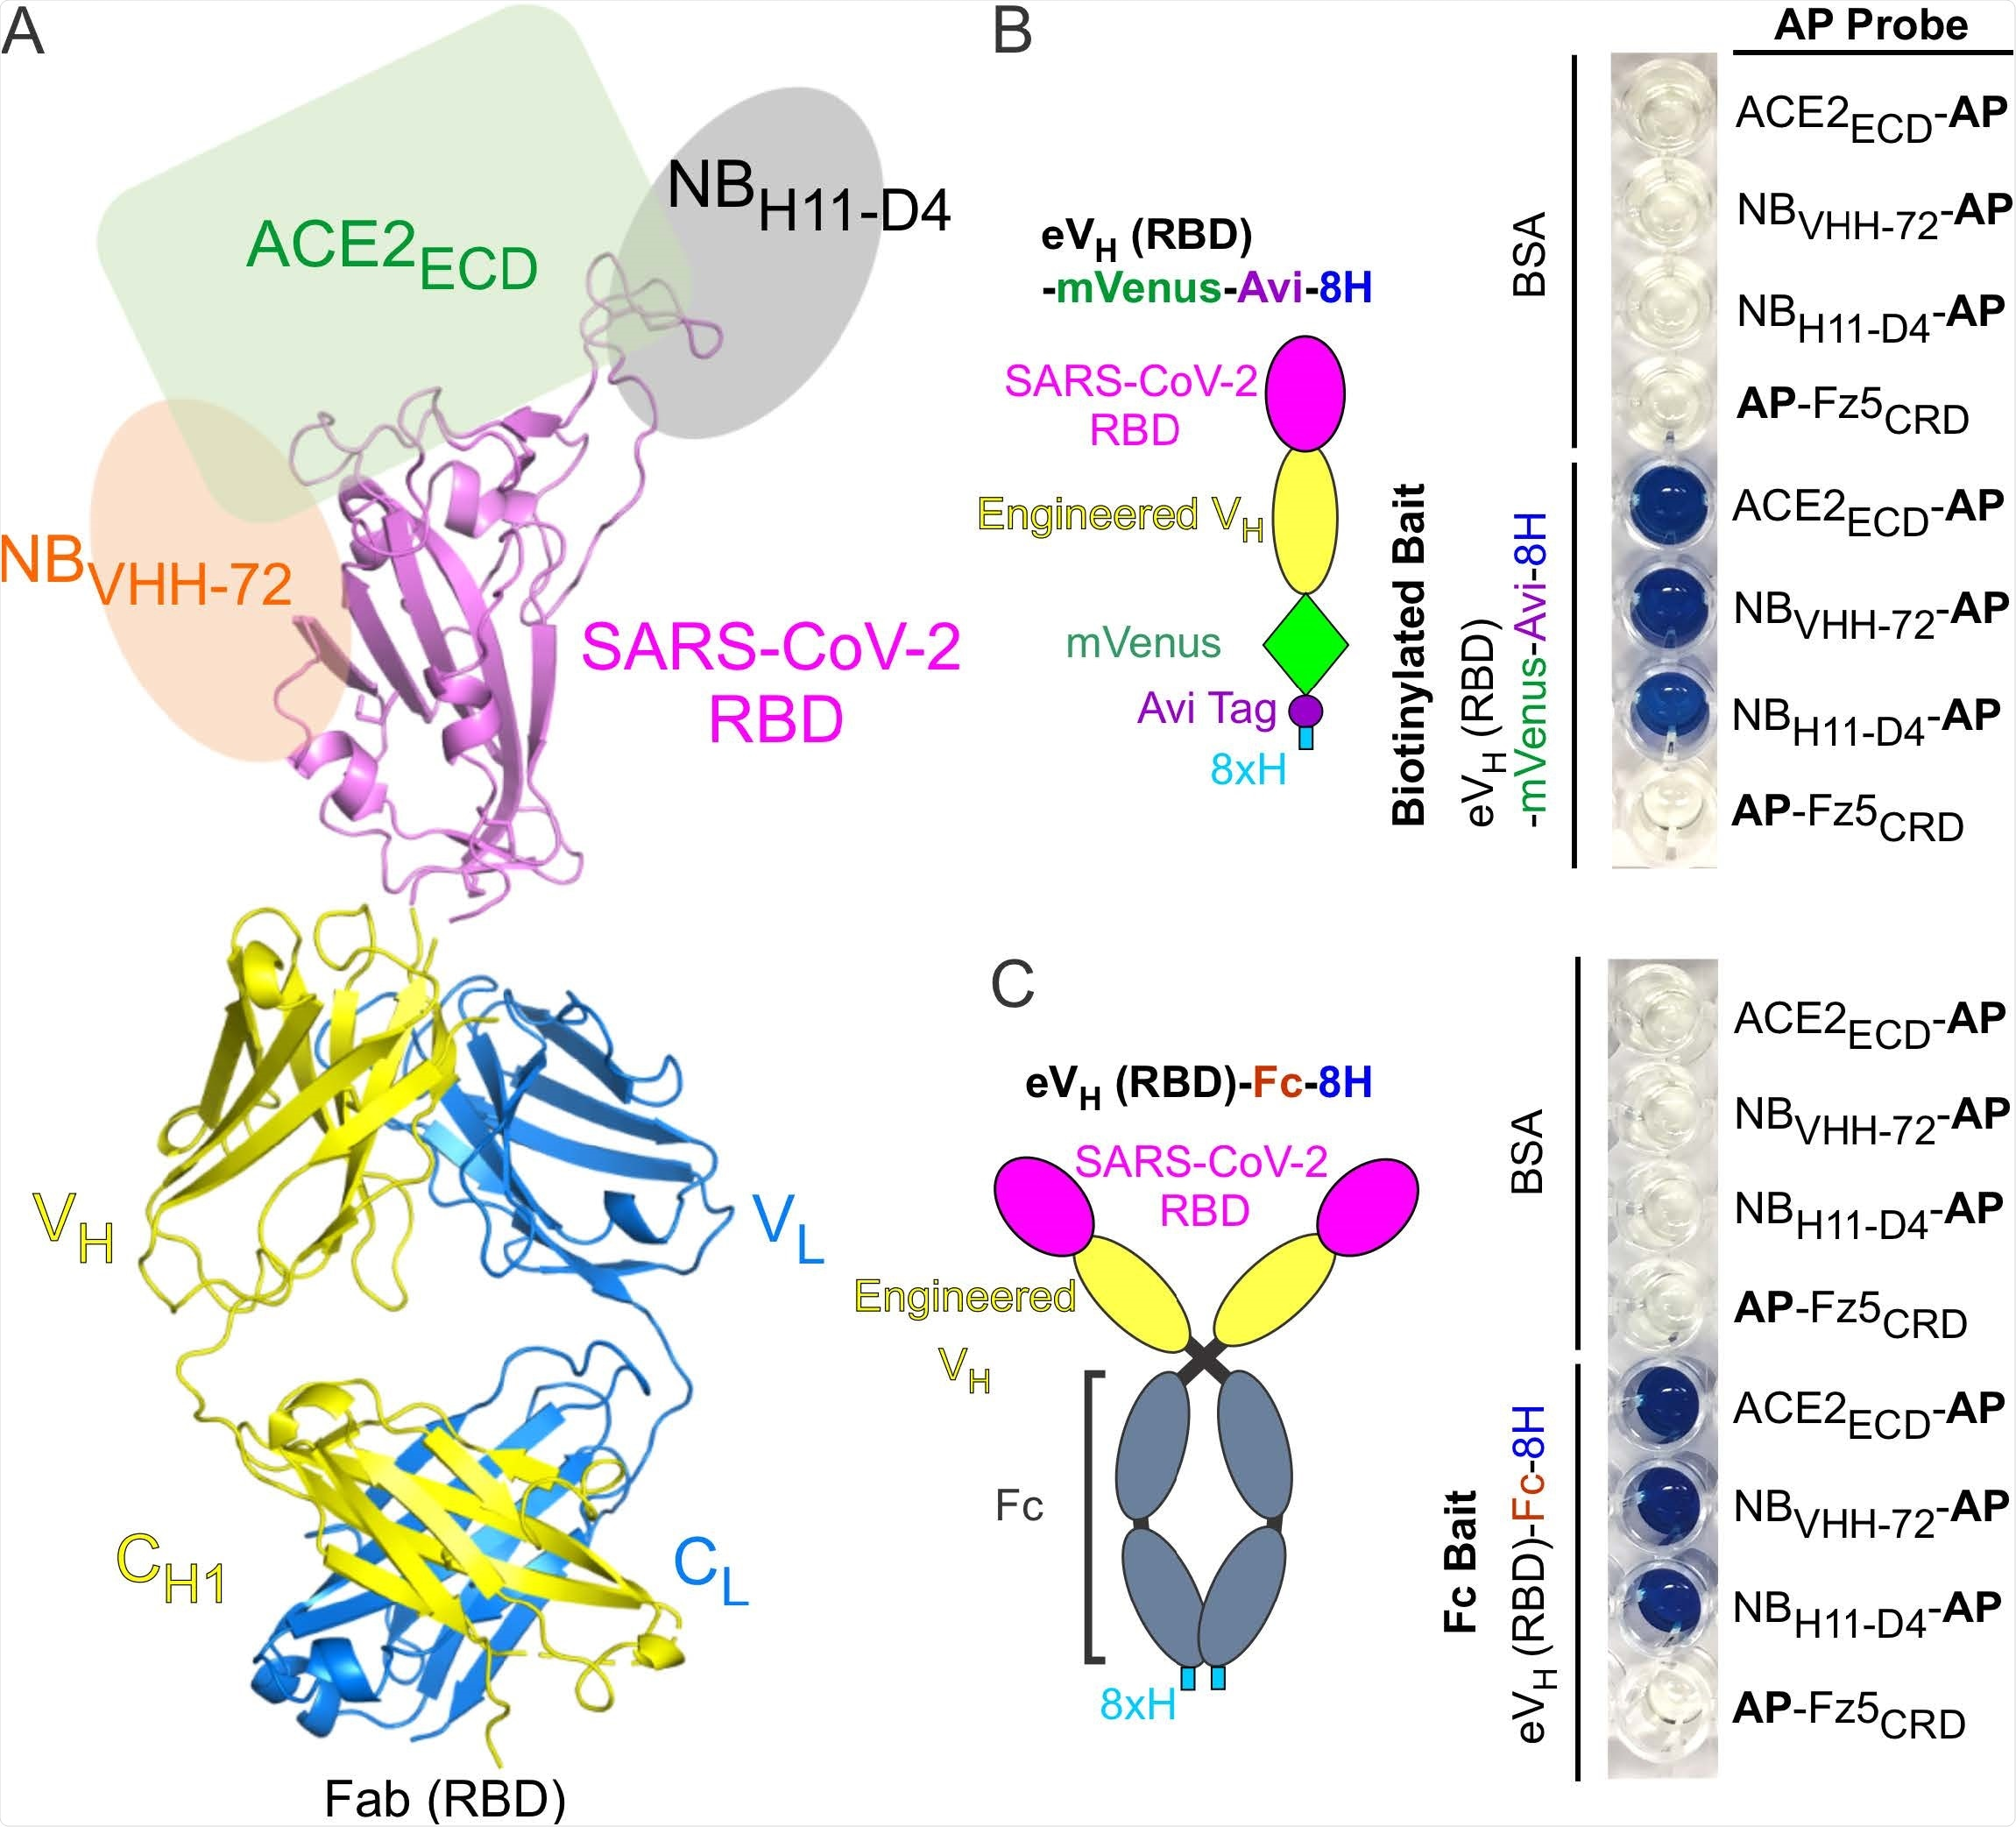 Antibody Display SARS-CoV-2 RBD (RBD-AD). (A) Molecular model of RBD-AD showing in the Fab format. The RBD (magenta) of SARS-CoV-2 S protein is displayed on the VH (yellow). A schematic diagram shows the binding sites on the RBD for ACE2ECD (green), NBVHH-72 (orange), and NBH11-D4 (grey). (B) A diagram of the RBD of SARS-CoV-2 S protein is displayed on the engineered VH fused to a mVenus, an Avi tag, and an 8xH tag at the Cterminus. For the AP based binding assay, biotinylated baits were immobilized on streptavidincoated wells. Bound AP fusion proteins (probes) were visualized with BluePhos phosphatase substrate solution. BSA and Fz5CRD fusion proteins are used as negative controls. (C) Diagram of SARS-CoV-2 RBD-containing engineered VH fused an 8xH tagged human Fc. FC baits were captured on protein-G coated wells and incubated with AP fusion proteins (probes). The bait and probe interactions were detected as in panel (B).